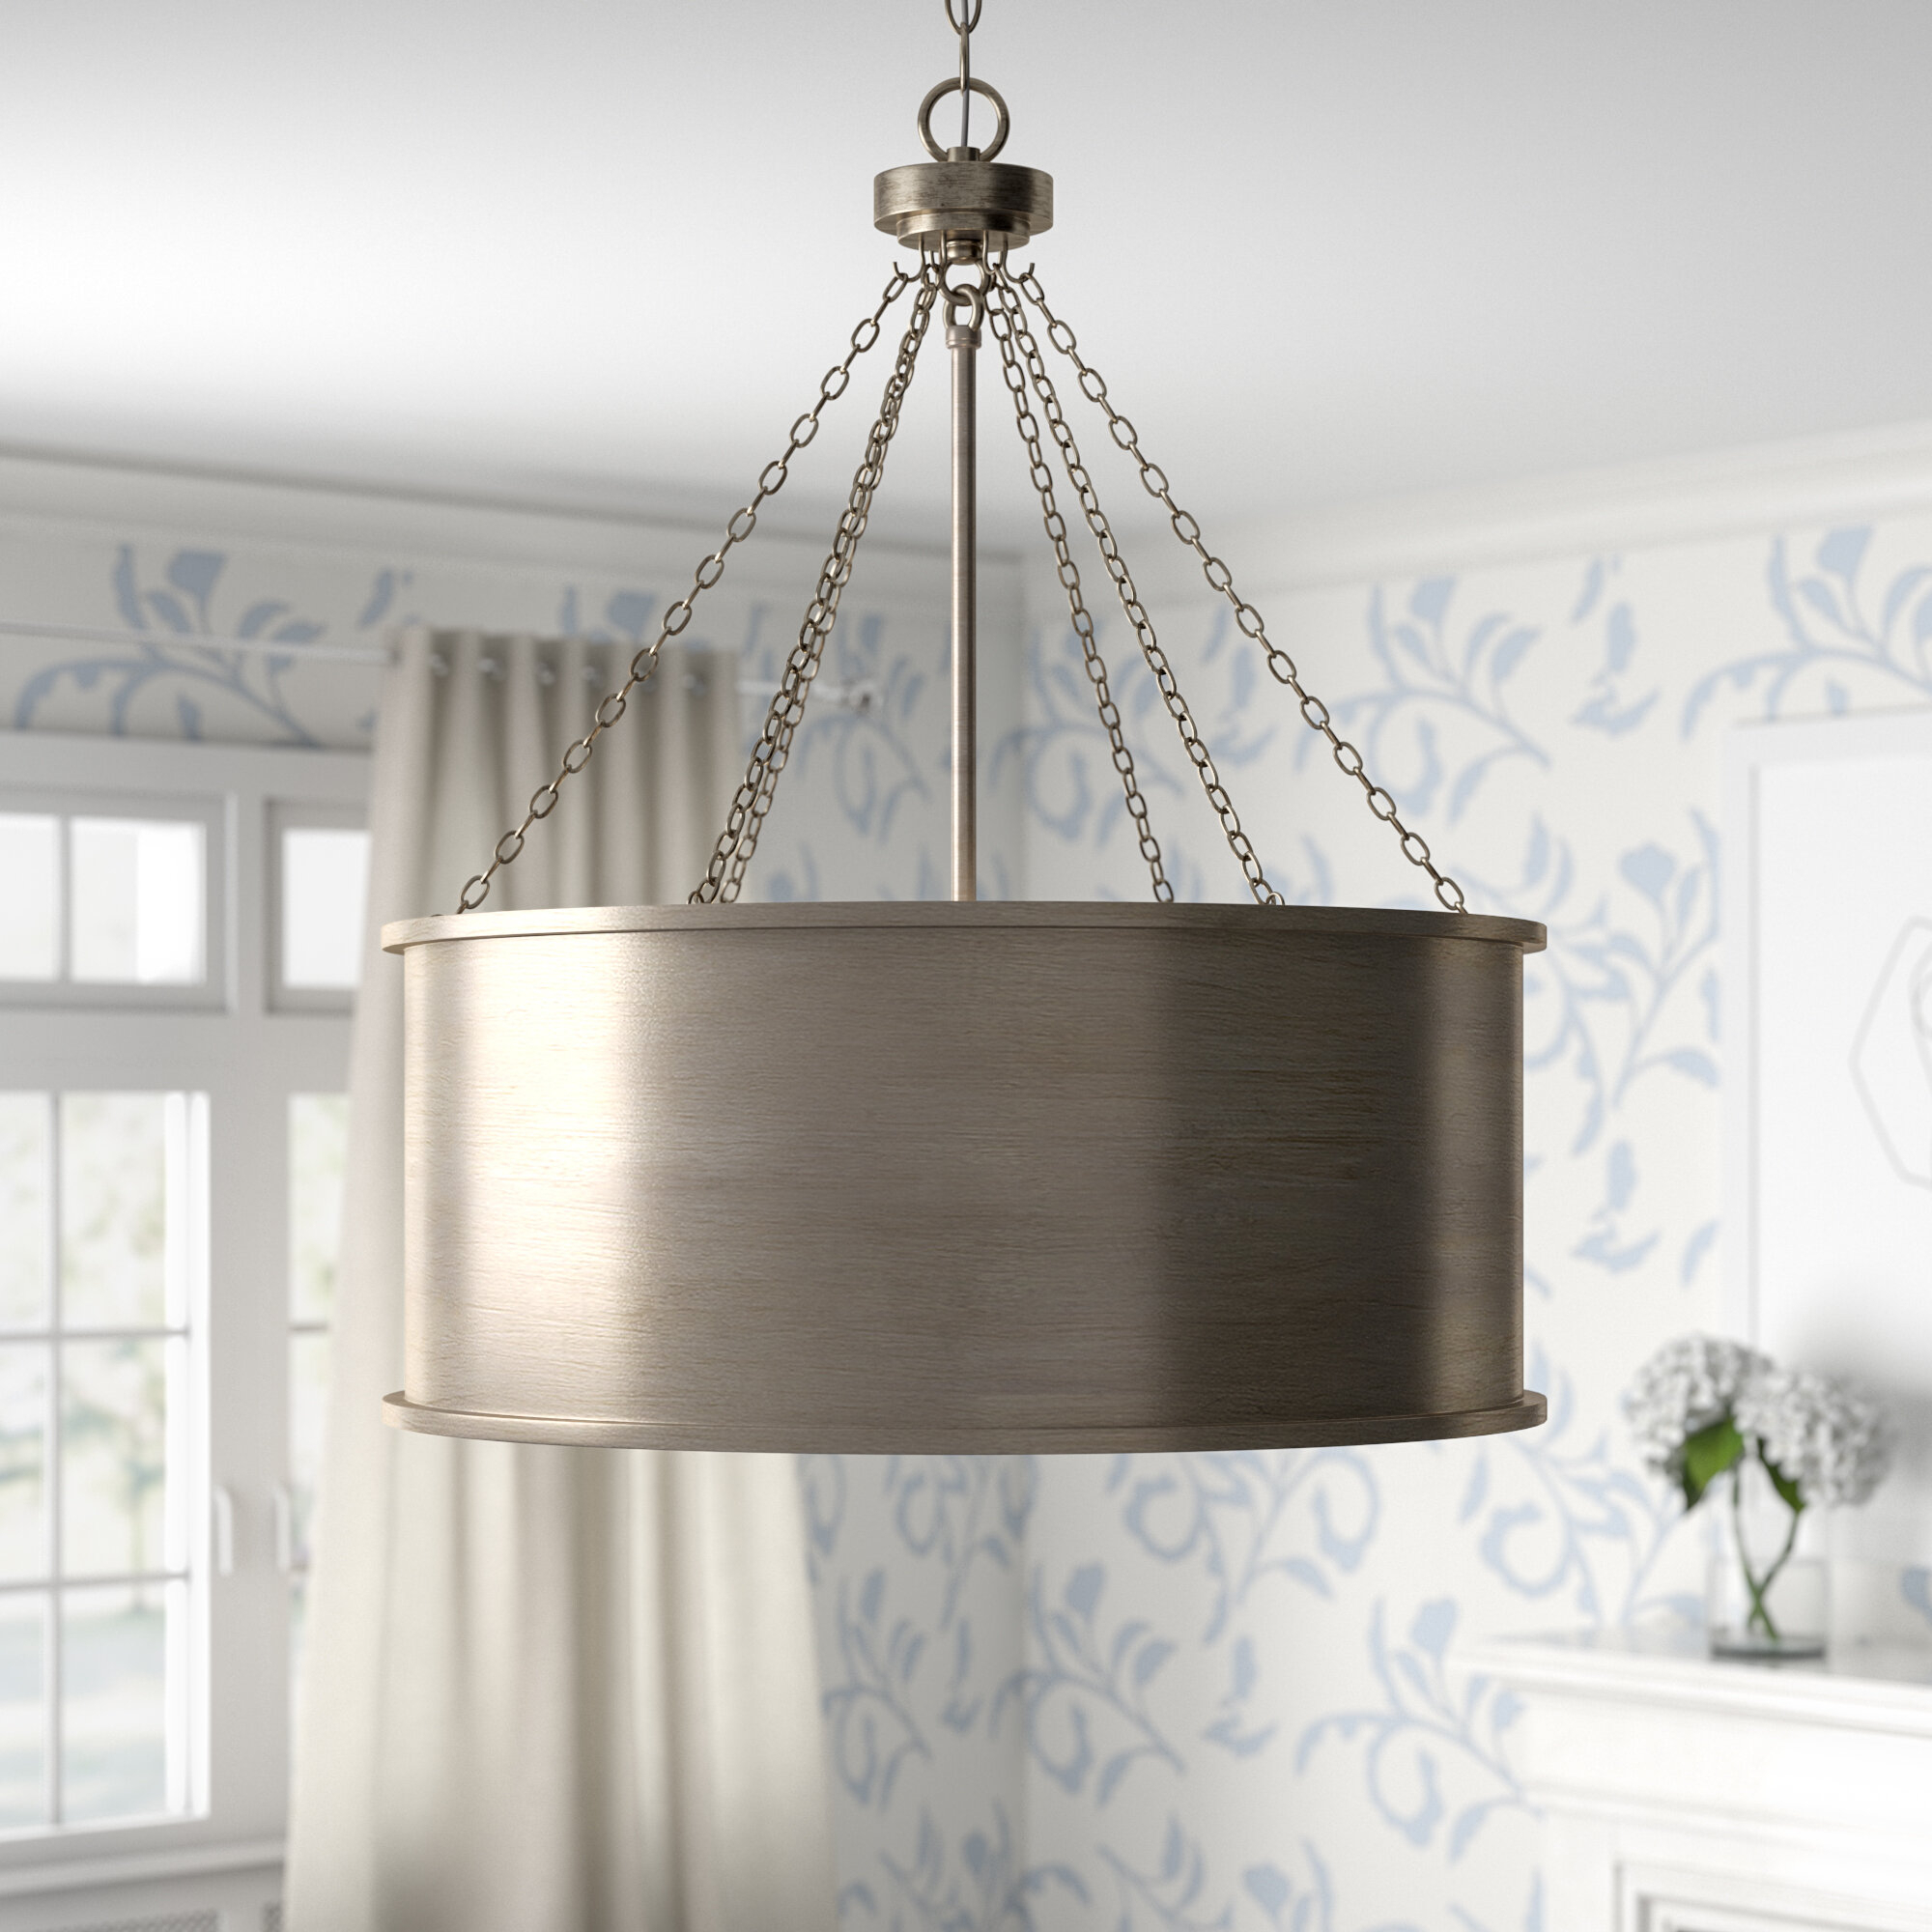 Bowe 6 Light Pendant Within Abel 5 Light Drum Chandeliers (Image 8 of 30)